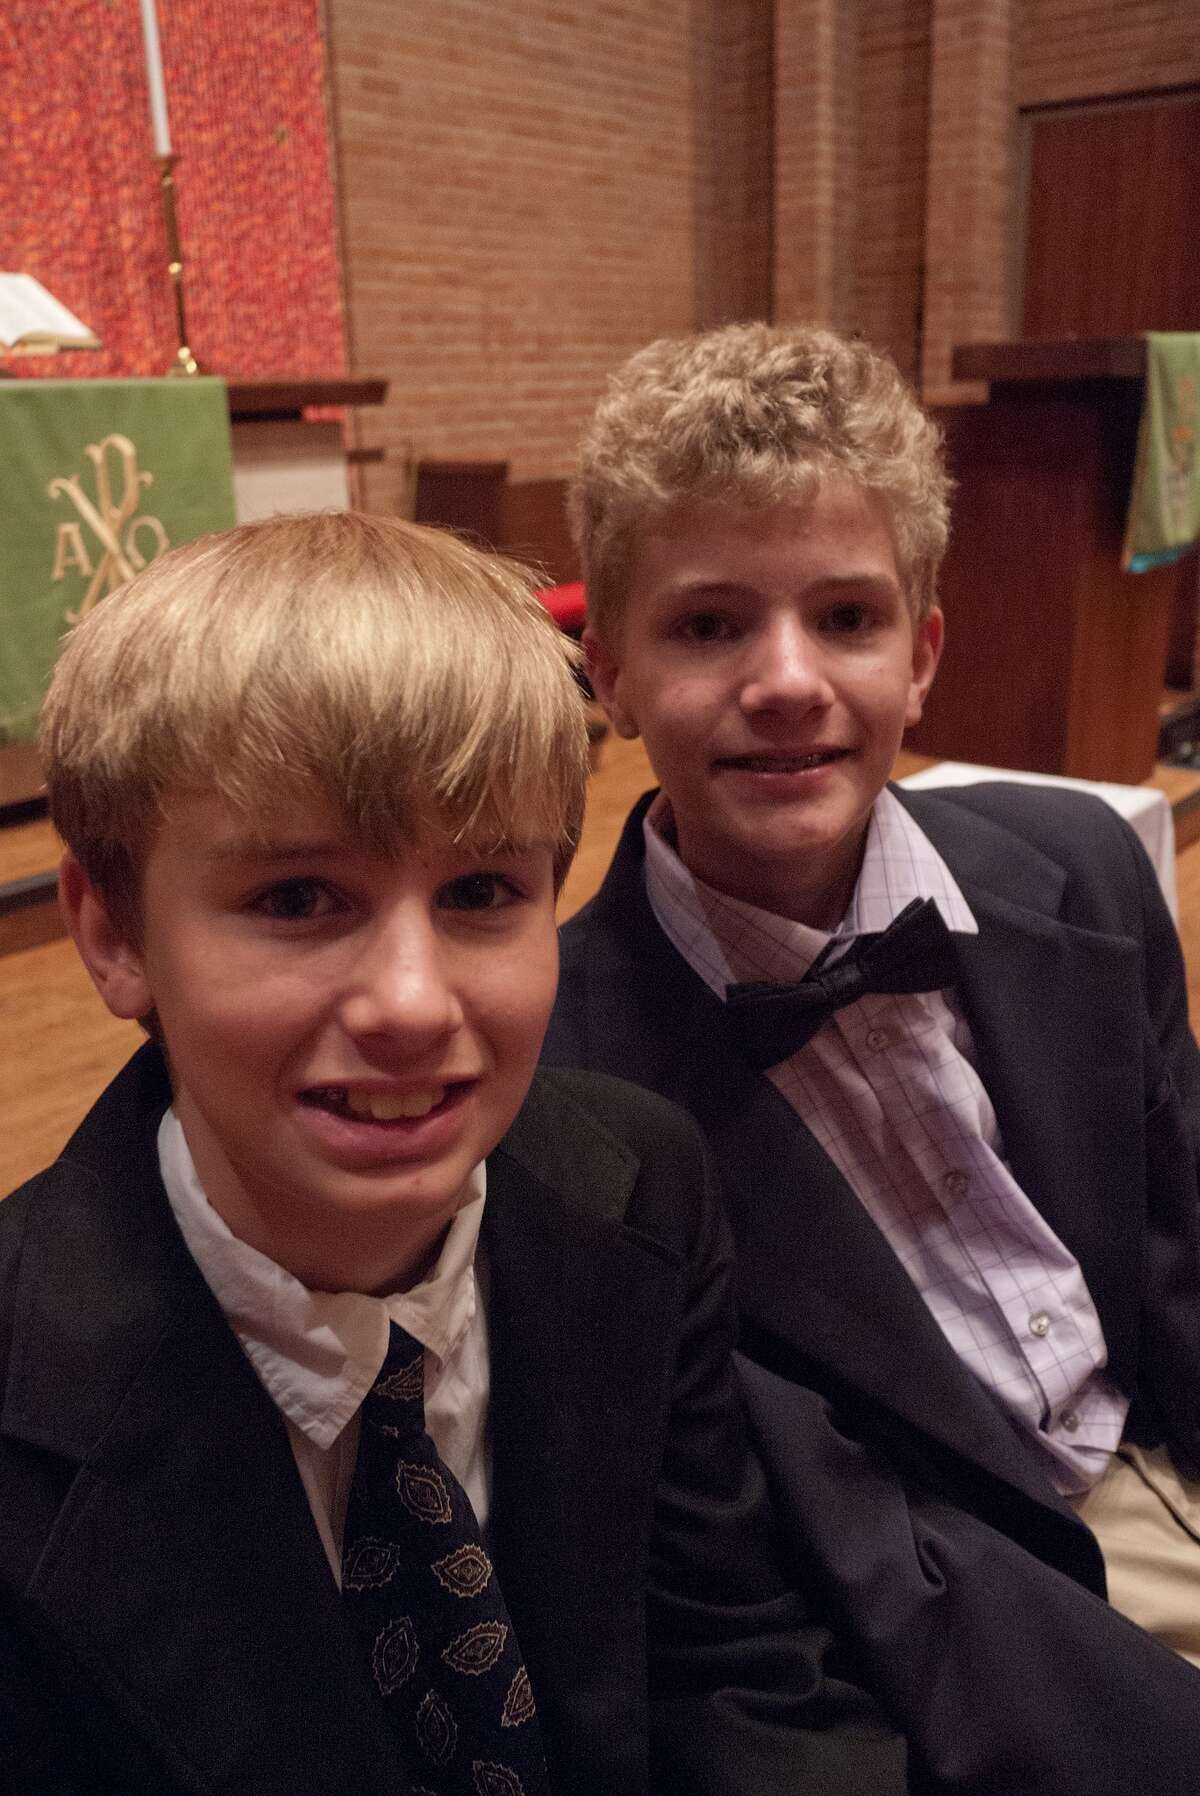 Jared Clark, 12, left, will run a triathlon to raise funds for trials into a rare disease affecting his twin brother, Justin.